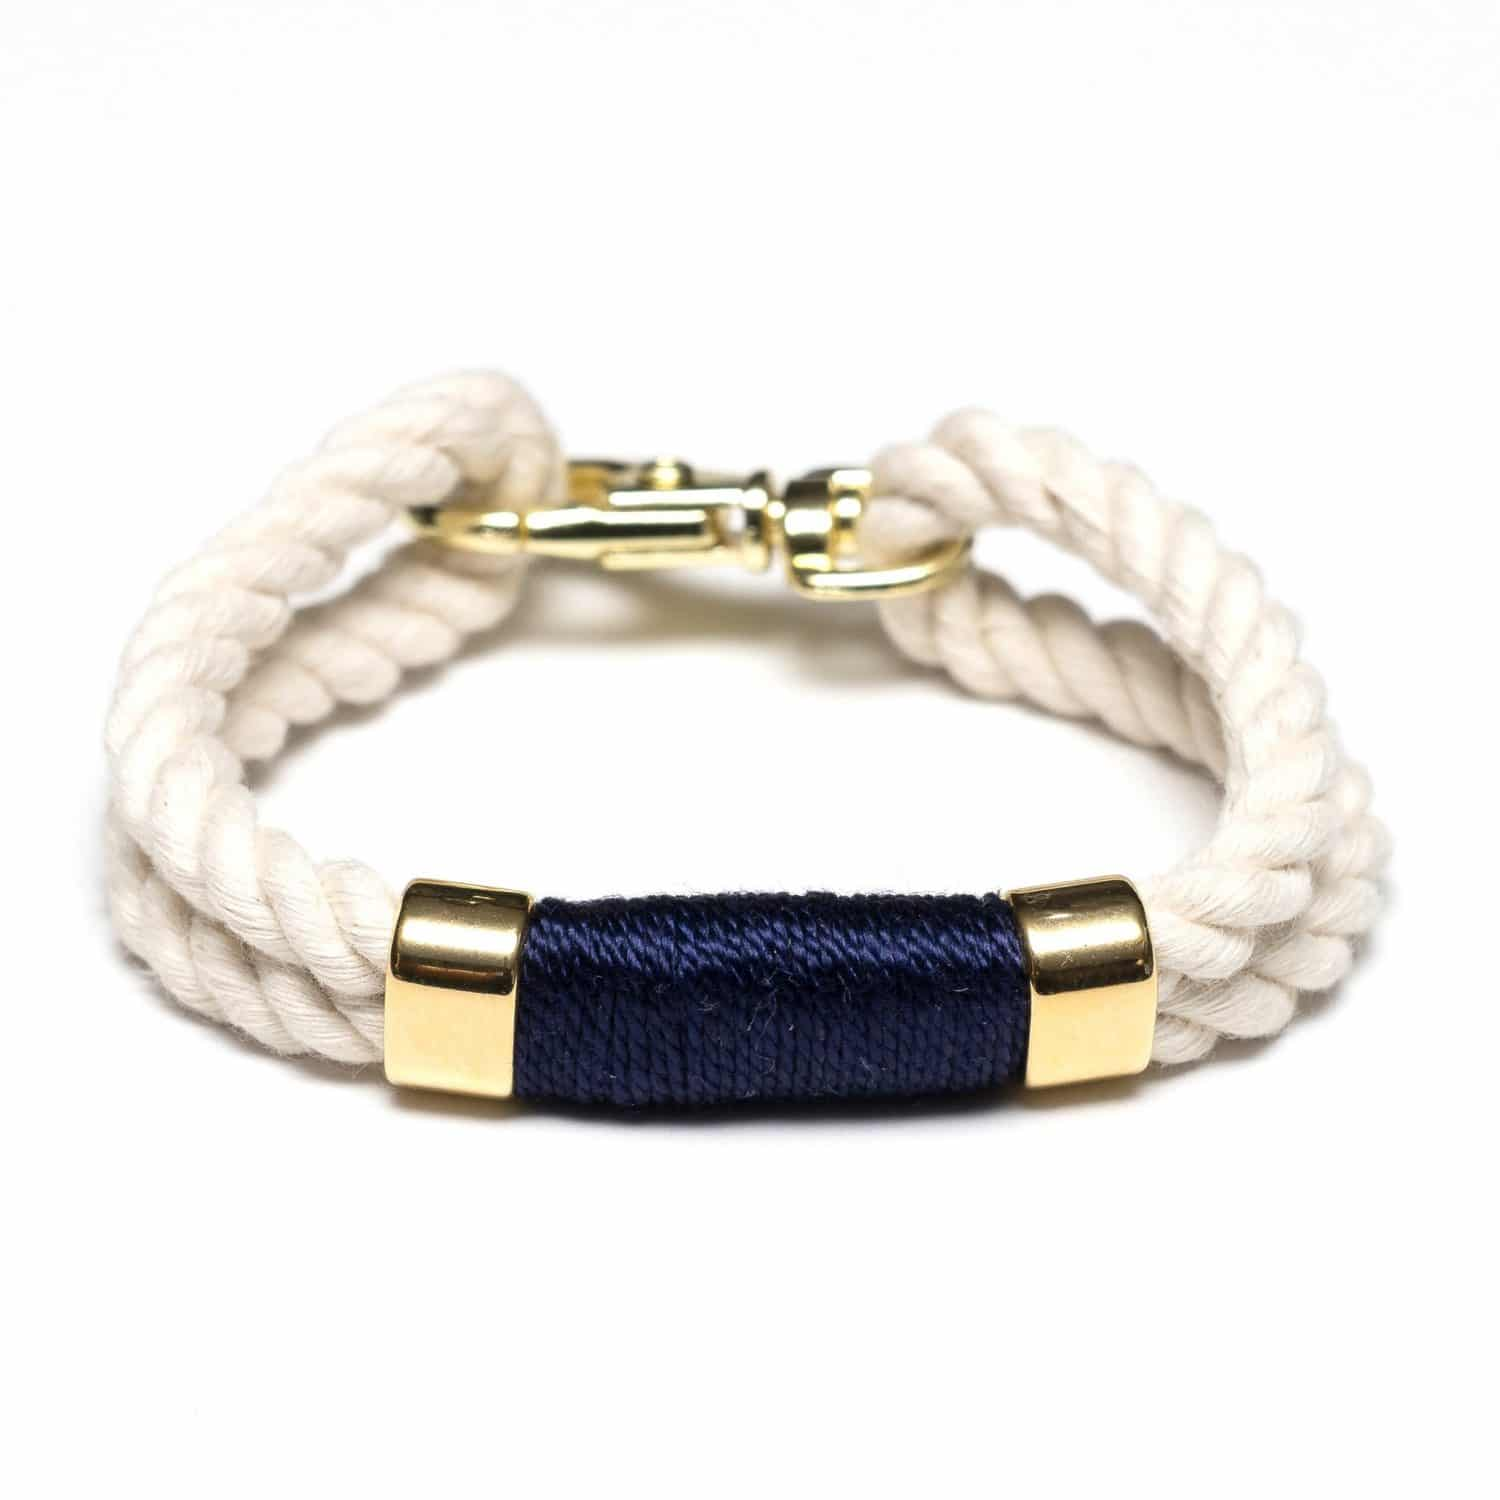 q navy bracelets sportz rope twisted double wrap bracelet image blue jewellery